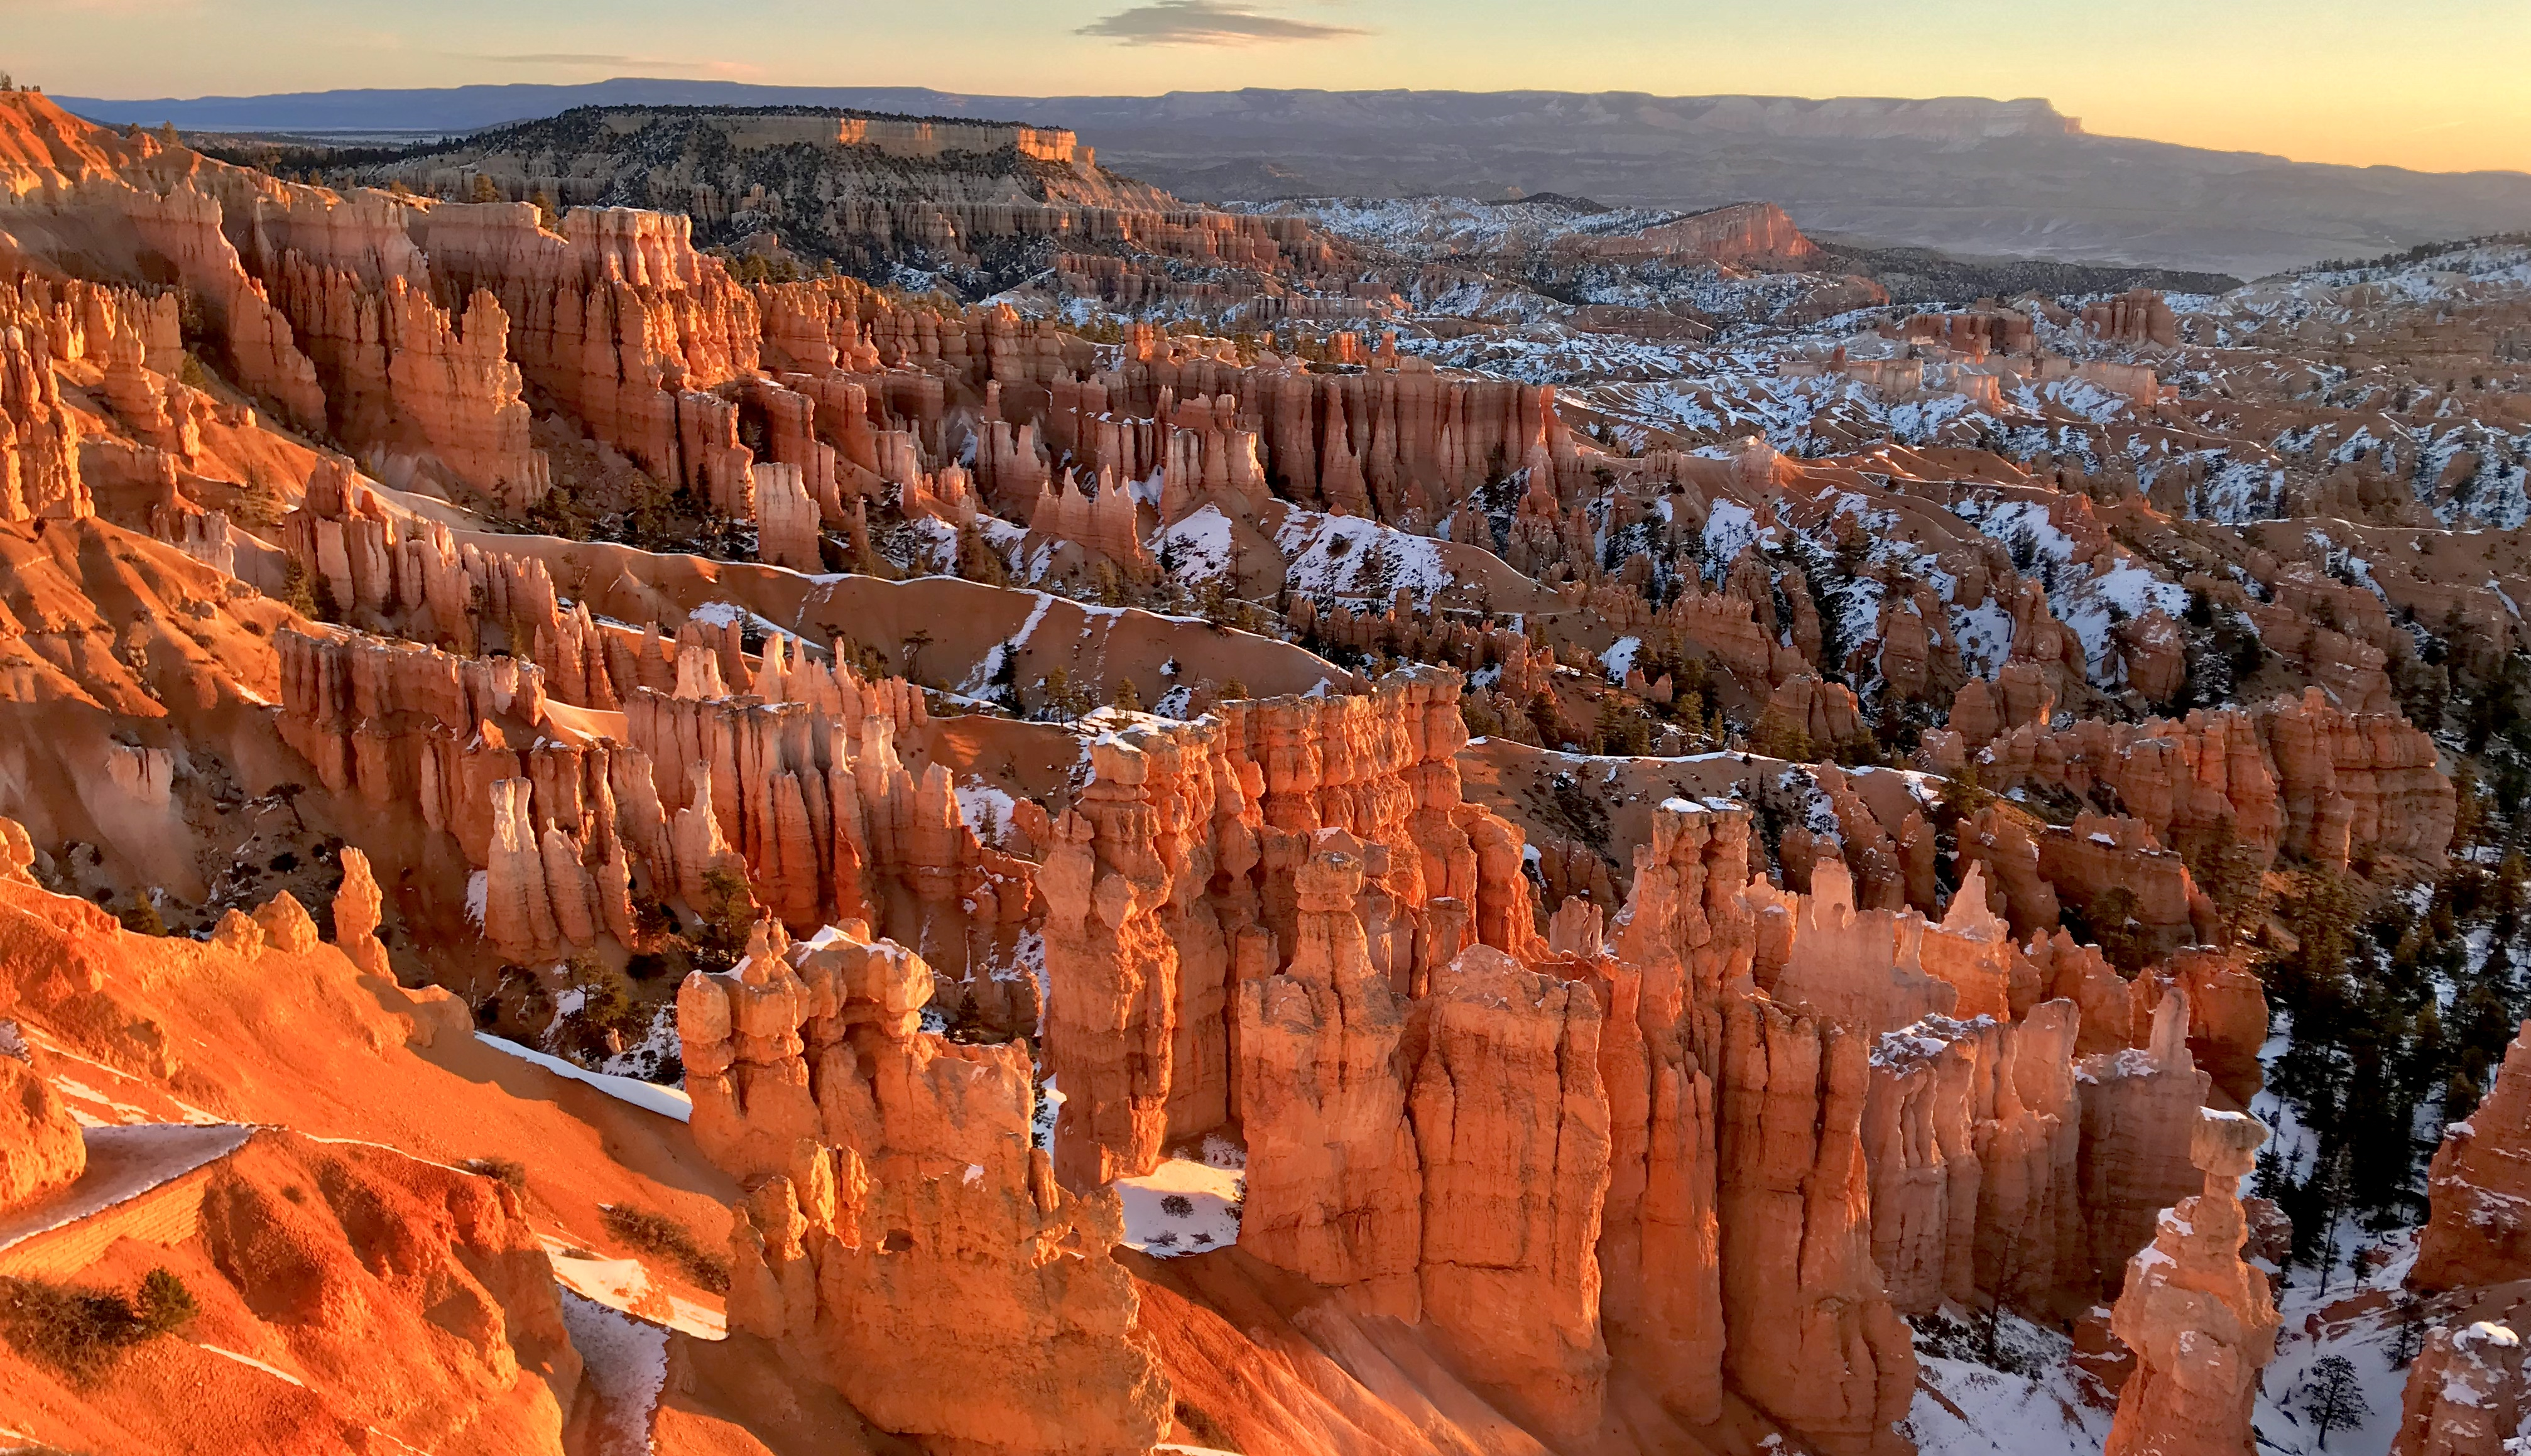 Stone hoodoos eerily rise toward the sky as morning sun bathes them in a warm red glow.